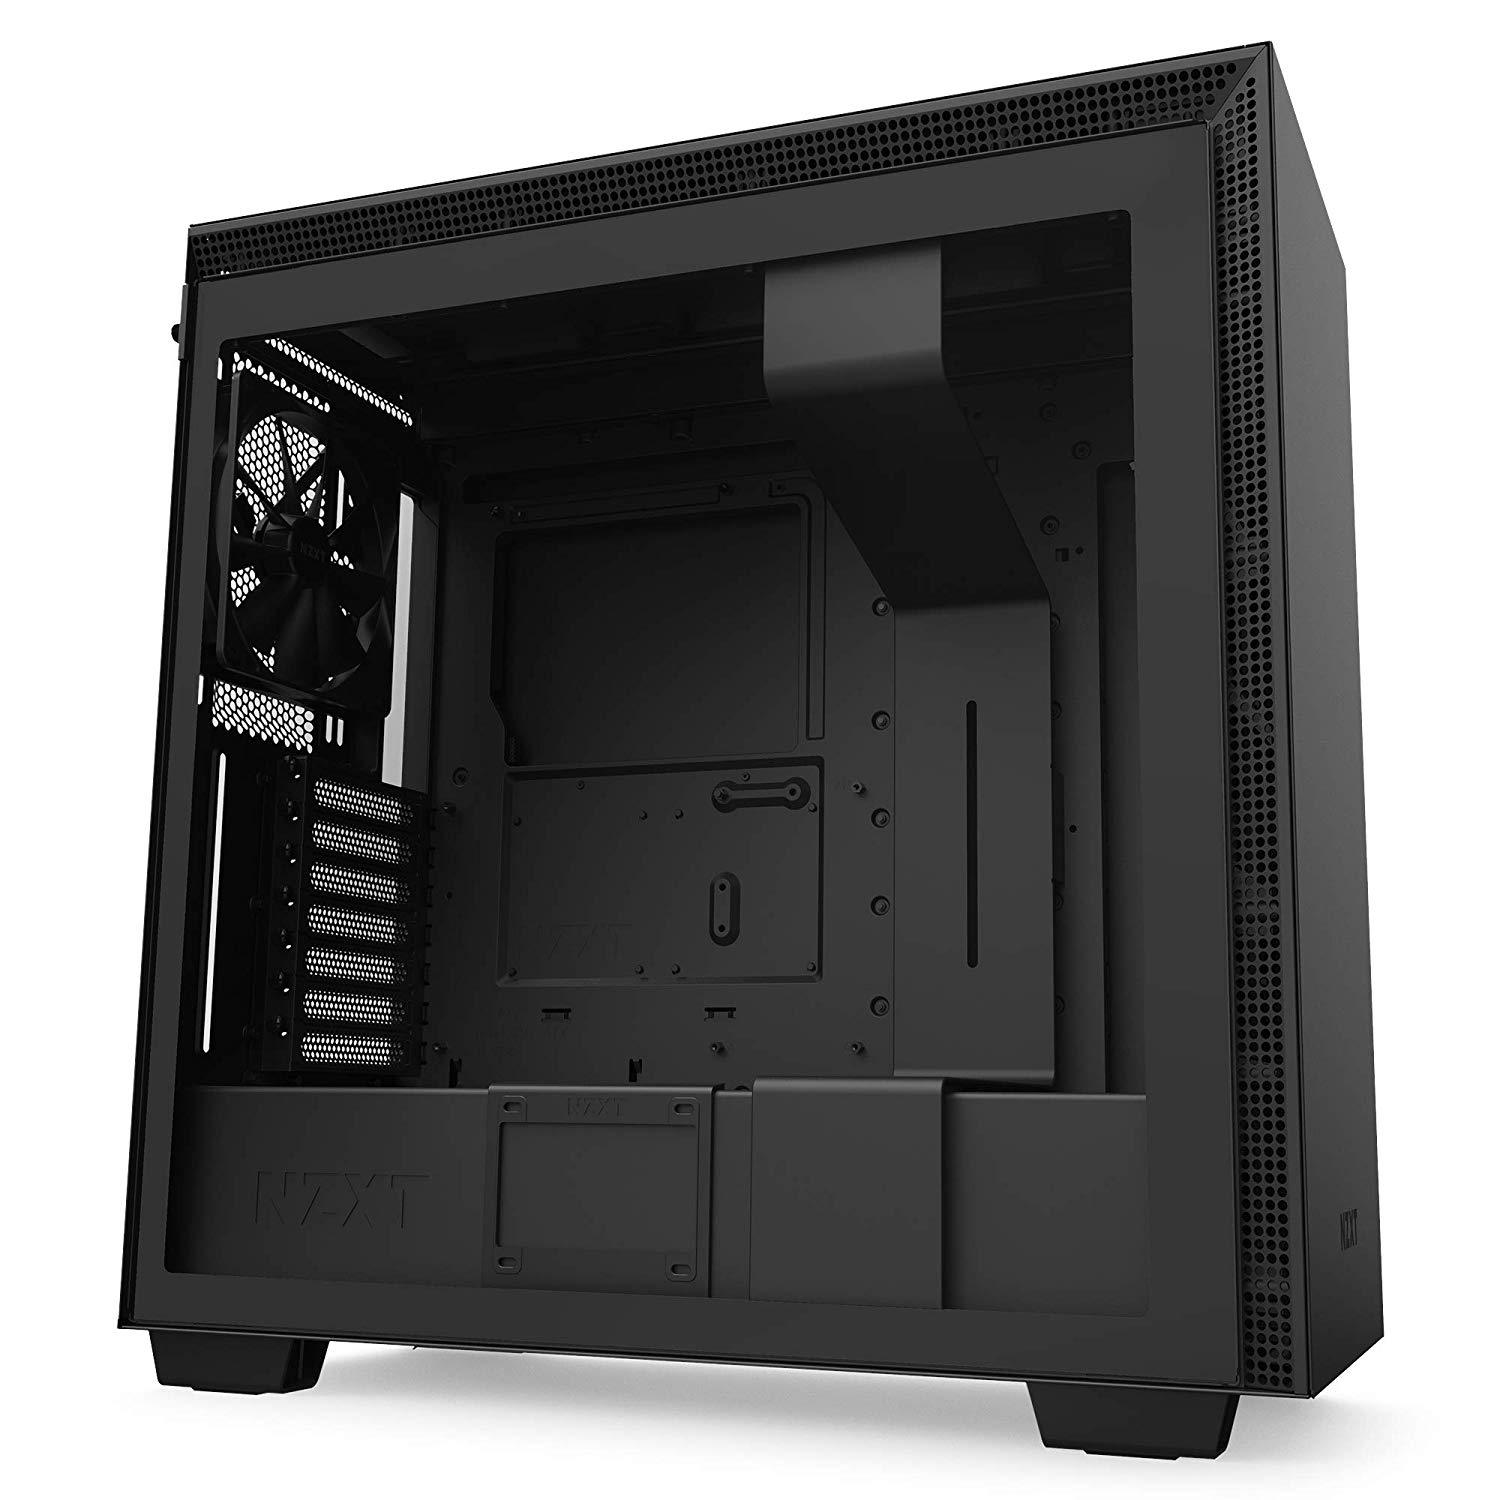 NZXT H710 ATX Mid Tower Case - Black